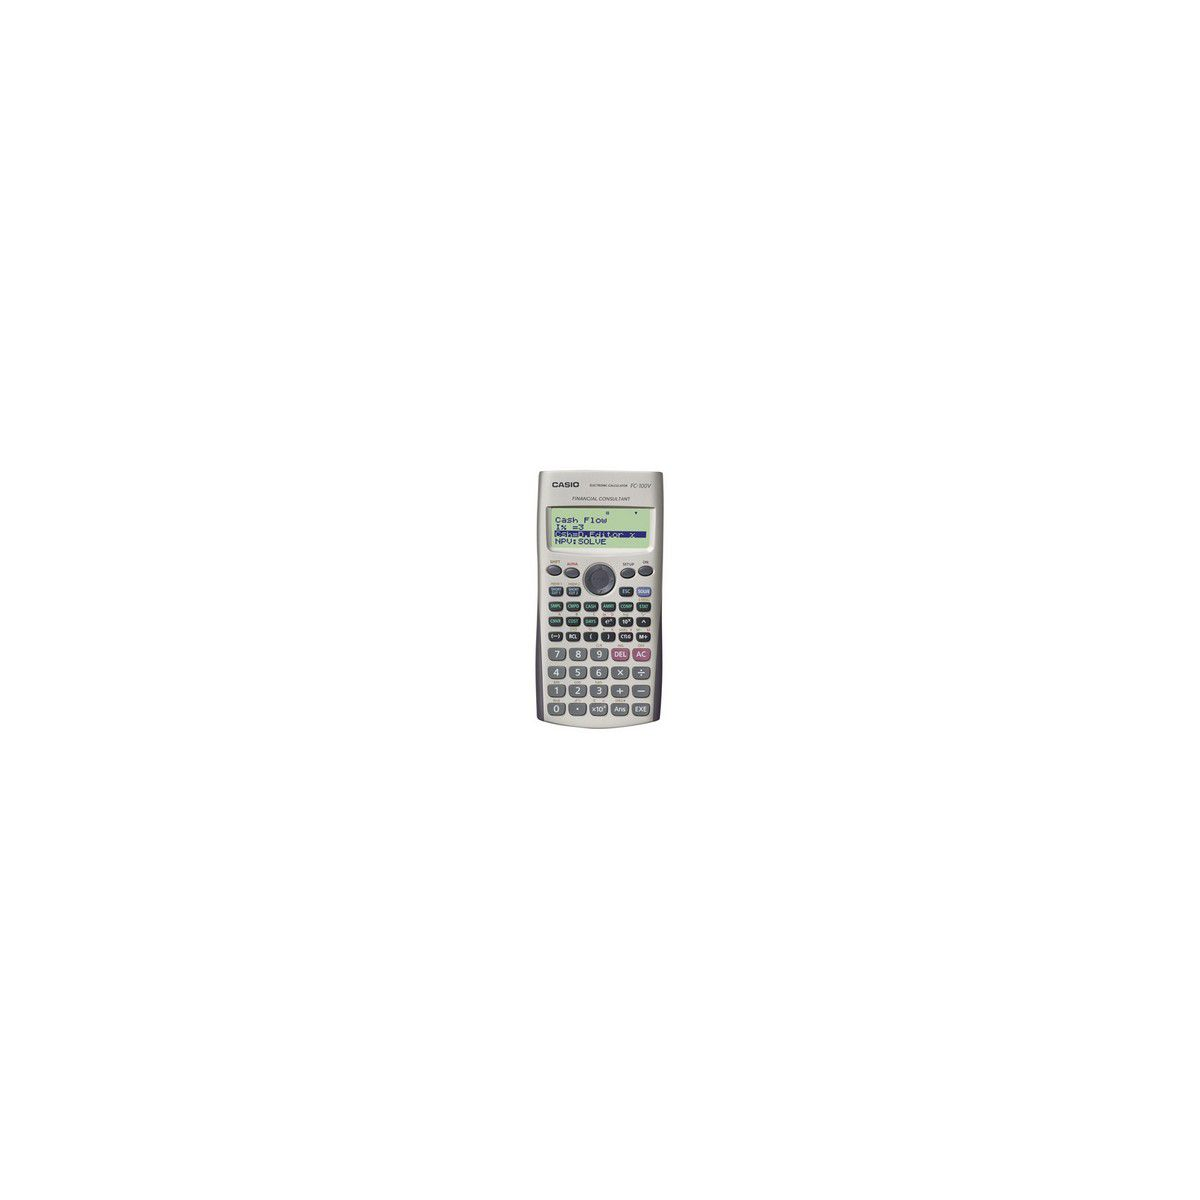 Calculatrice financière CASIO FC 100V (photo)